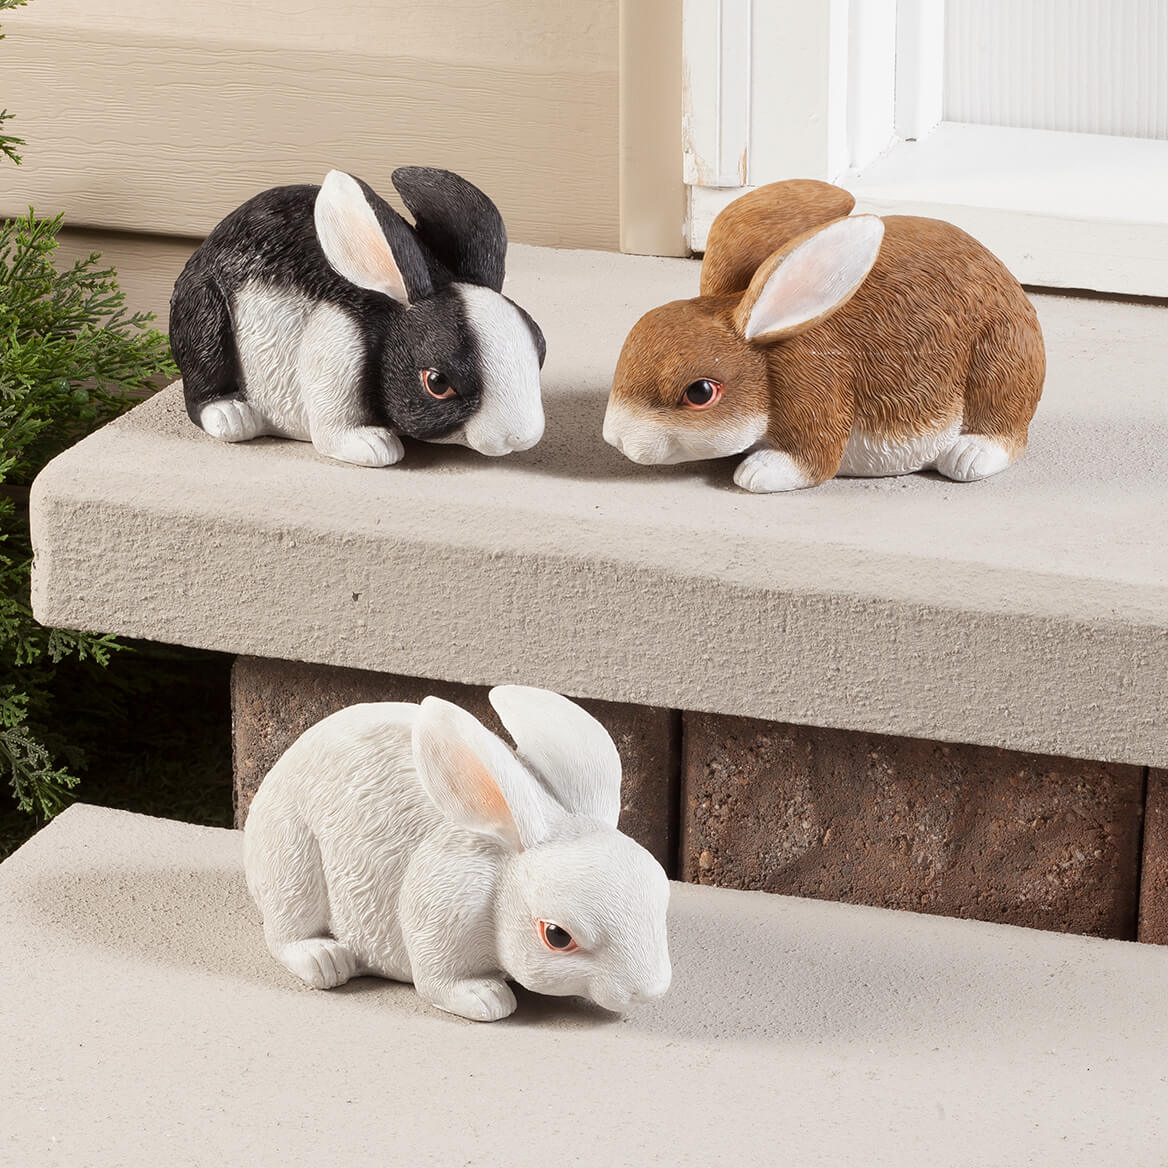 Bunny Figurines, Set of 3 – Resin Animal Statues for ...